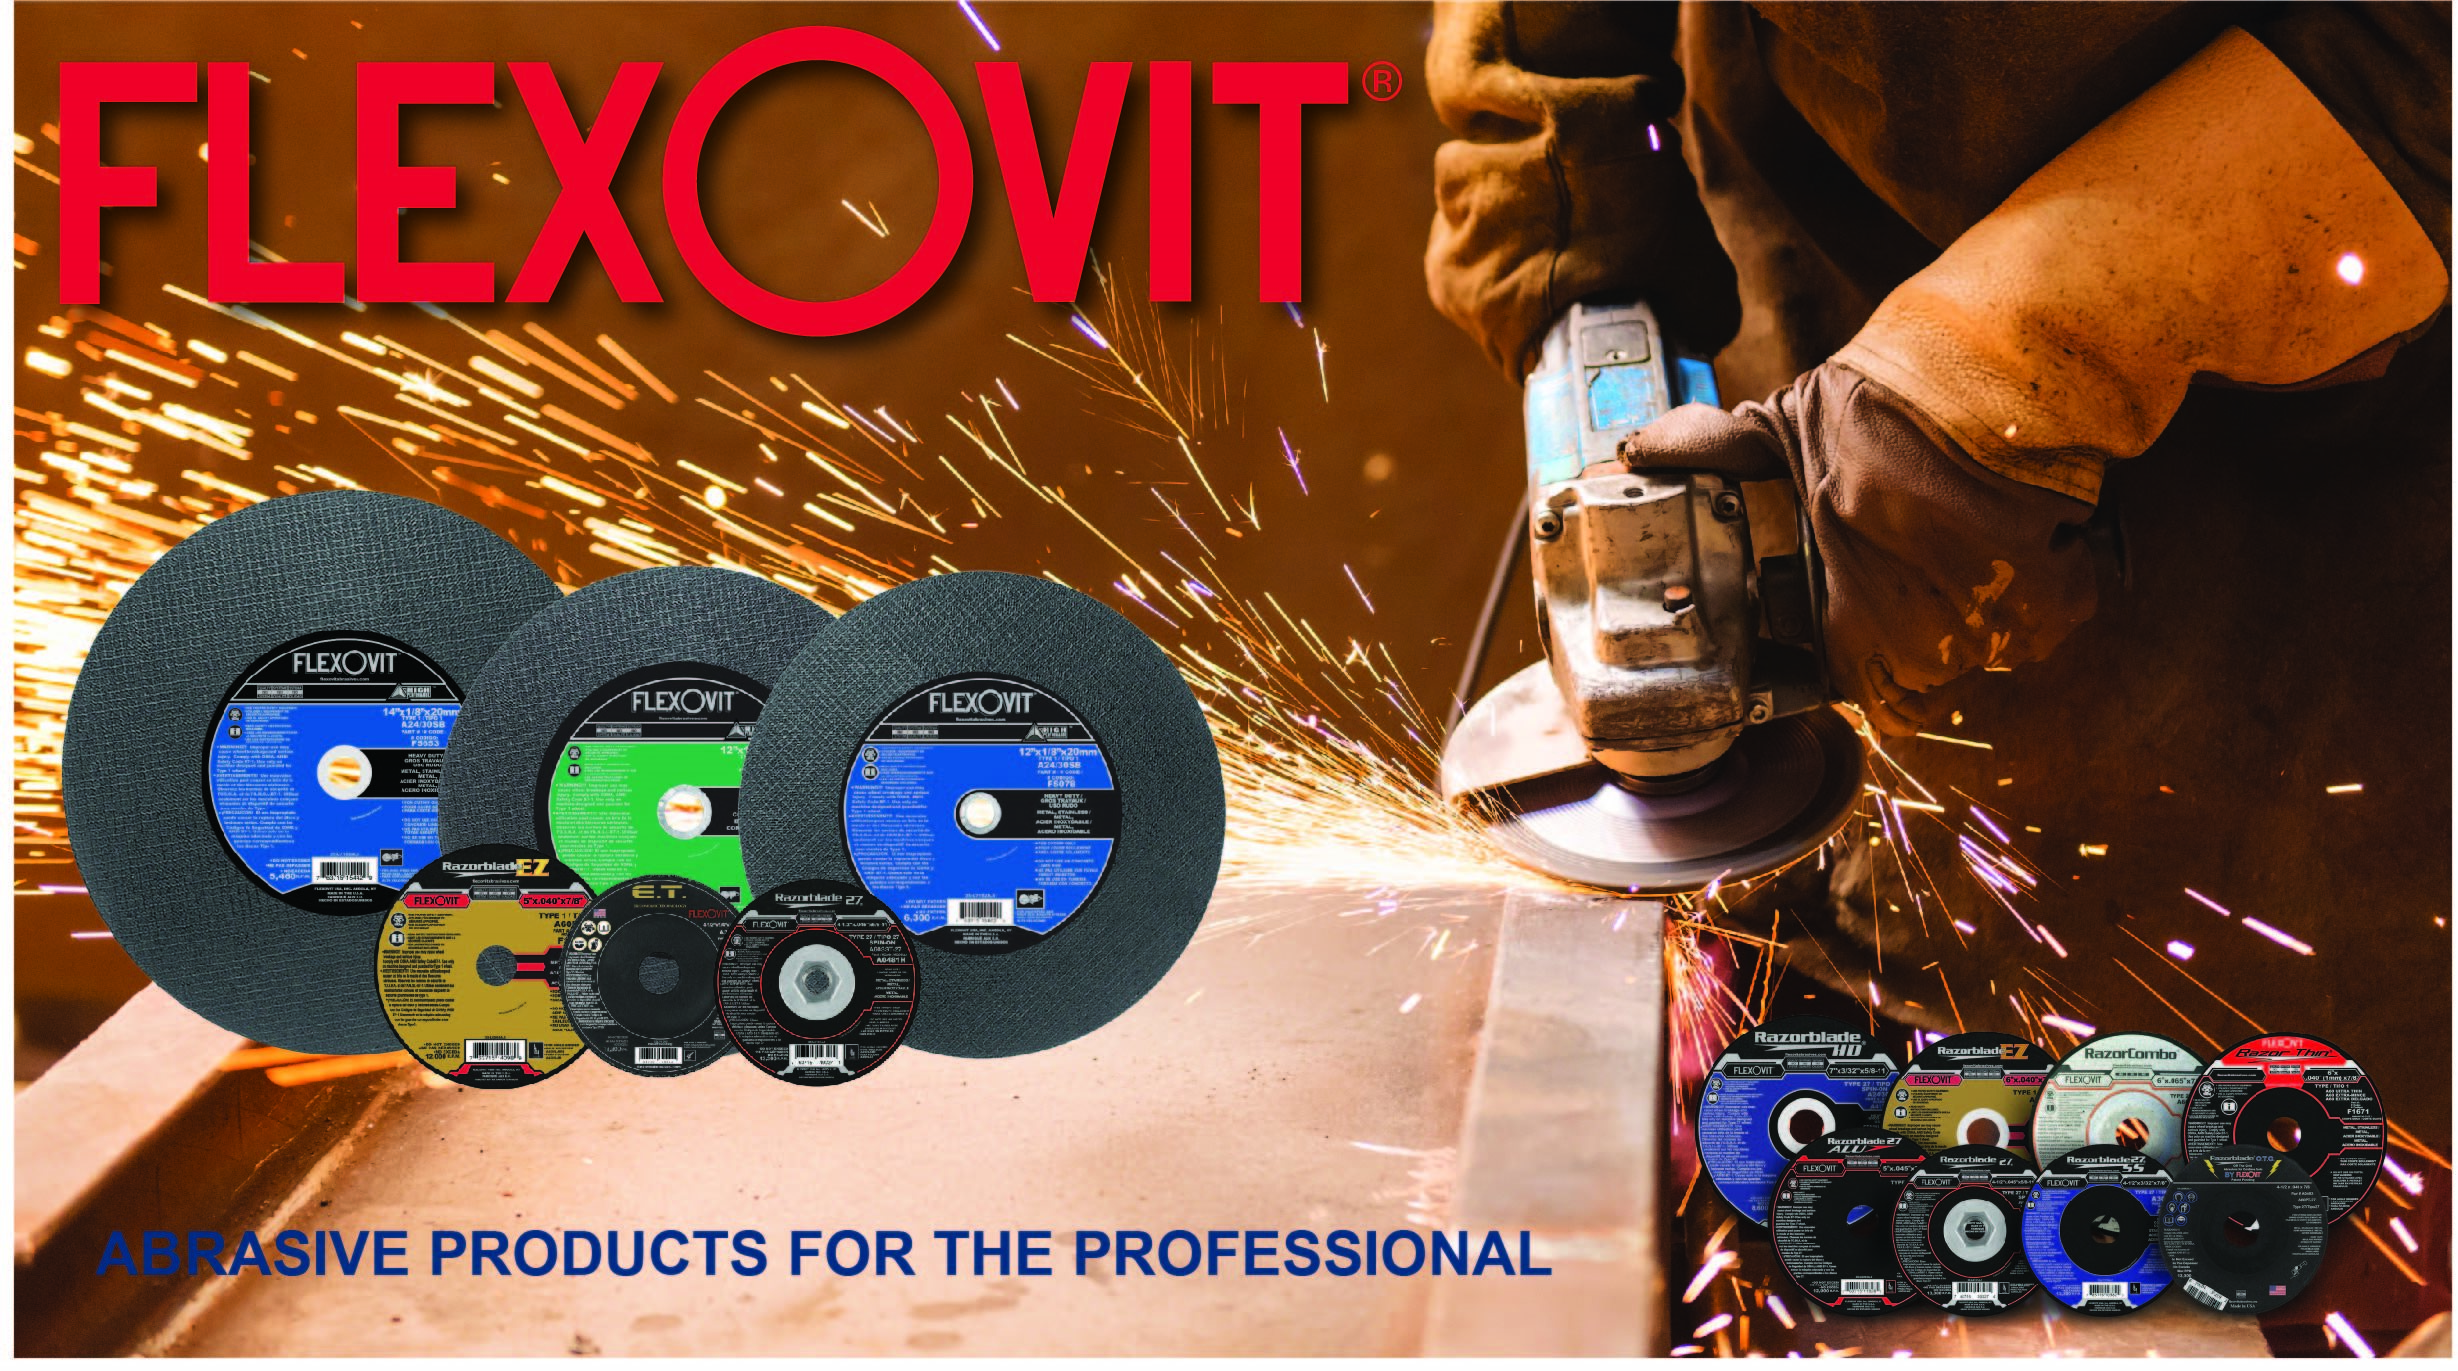 Flexovit CM Equipment Banner Ad English 3.0